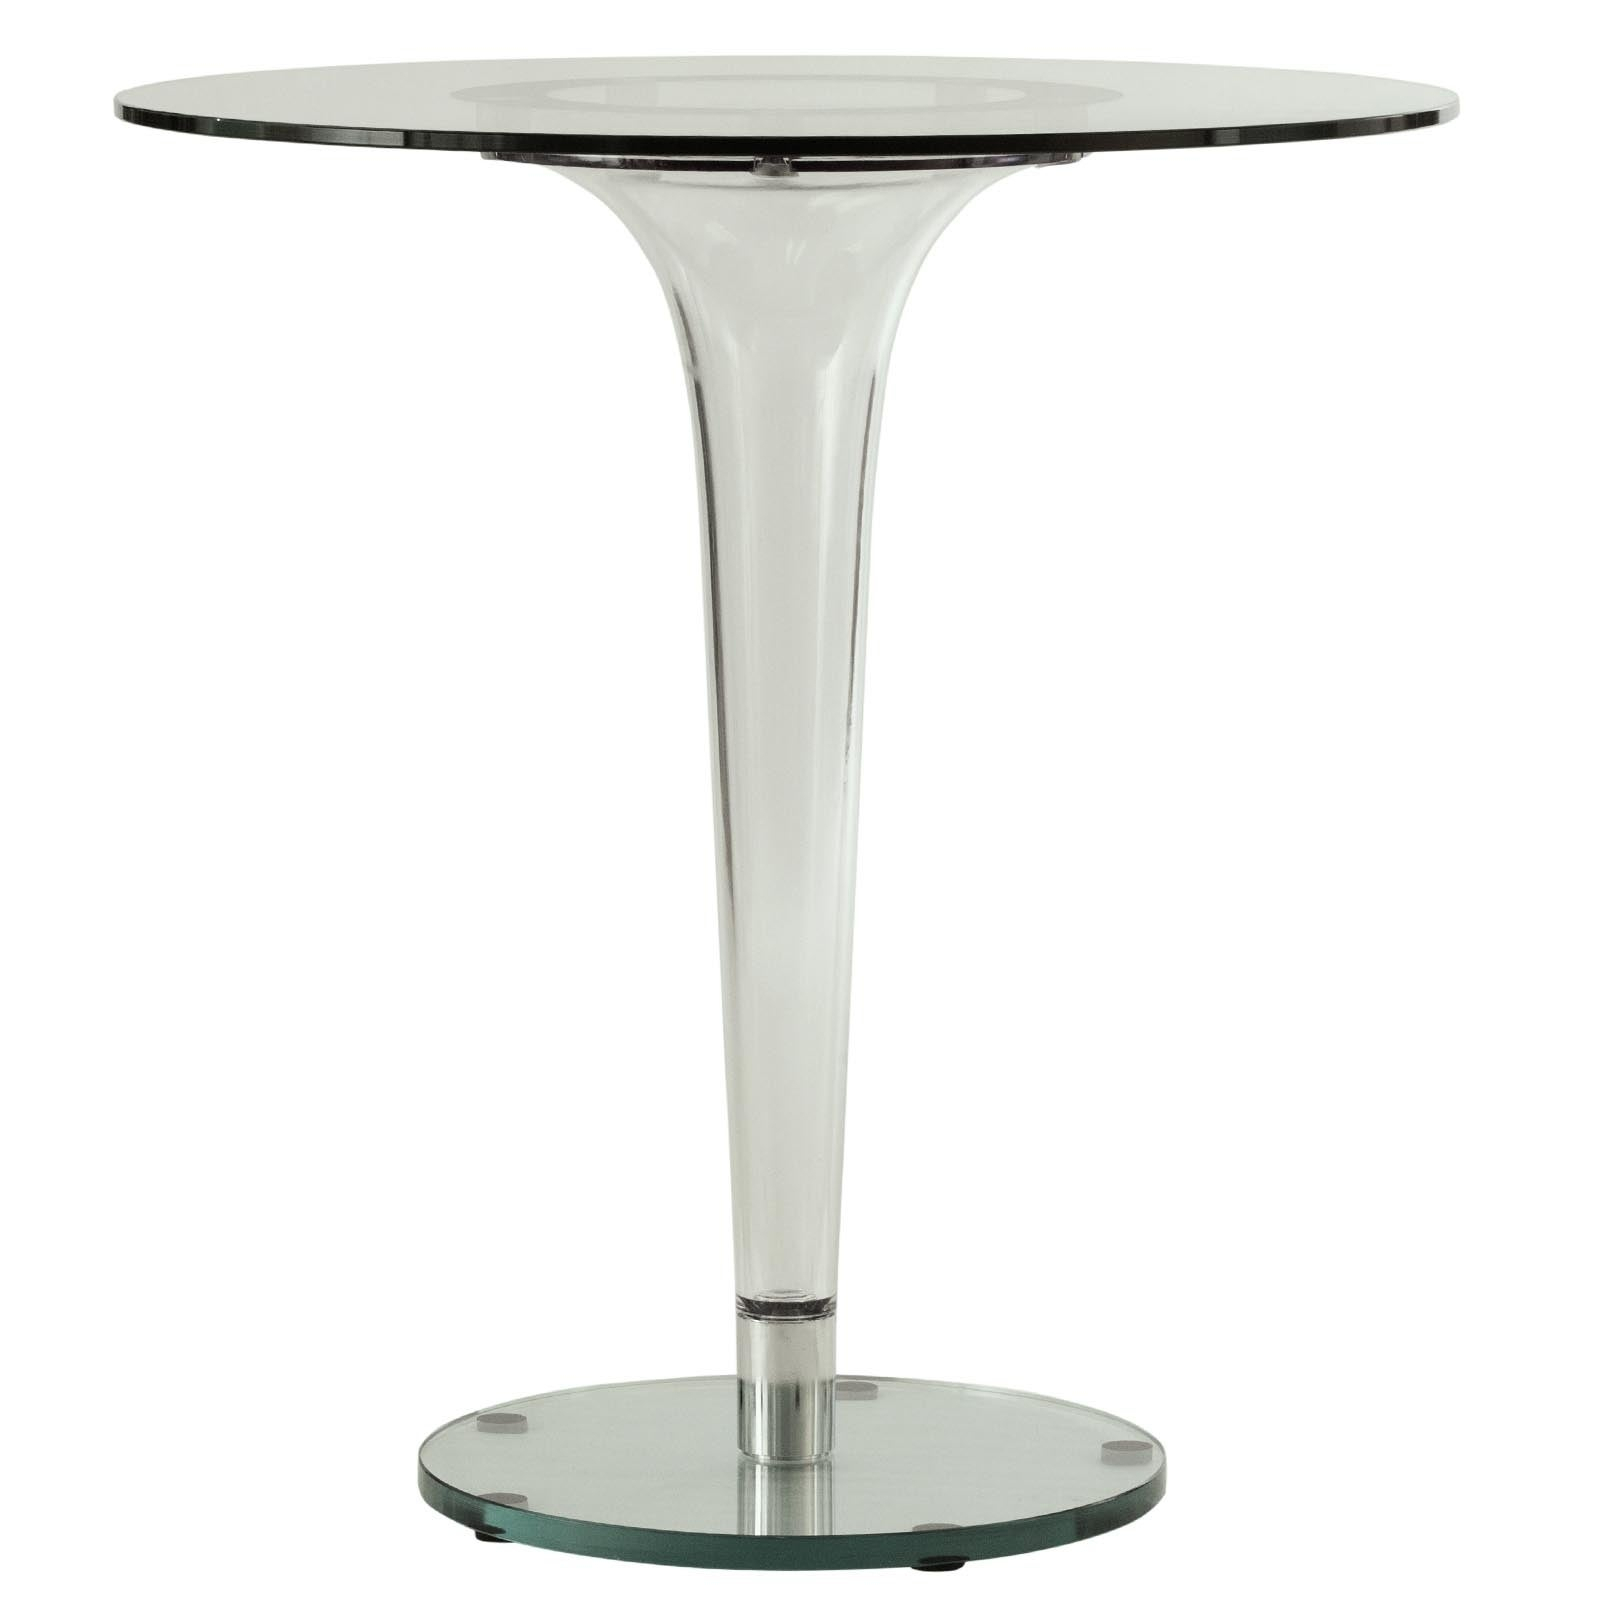 Leisuremod Linden Modern 28 Inch Round Glass Accent Dining Table – Clear – 27X27 Inside 2017 Linden Round Pedestal Dining Tables (View 9 of 25)